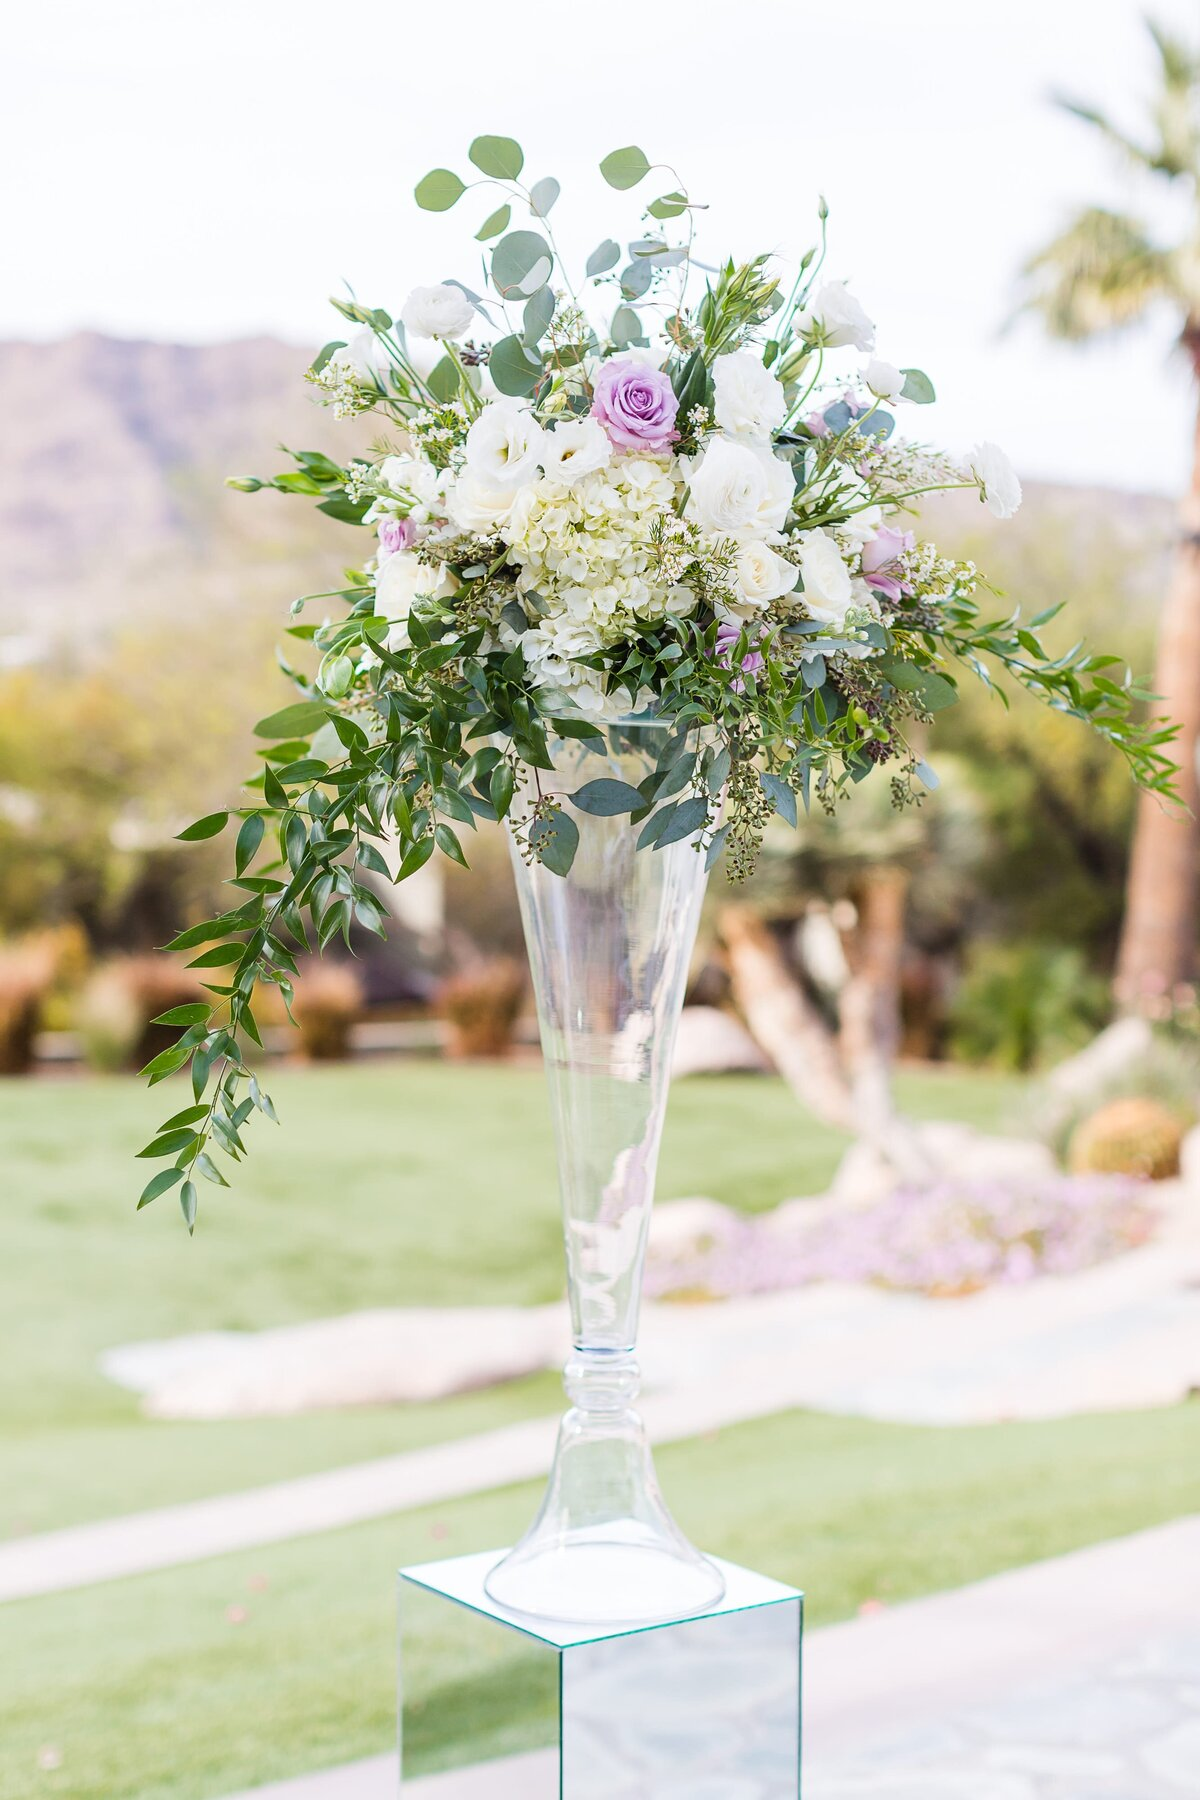 Sanctuary-on-Camelback-Wedding-by-Leslie-Ann-Photography-00026